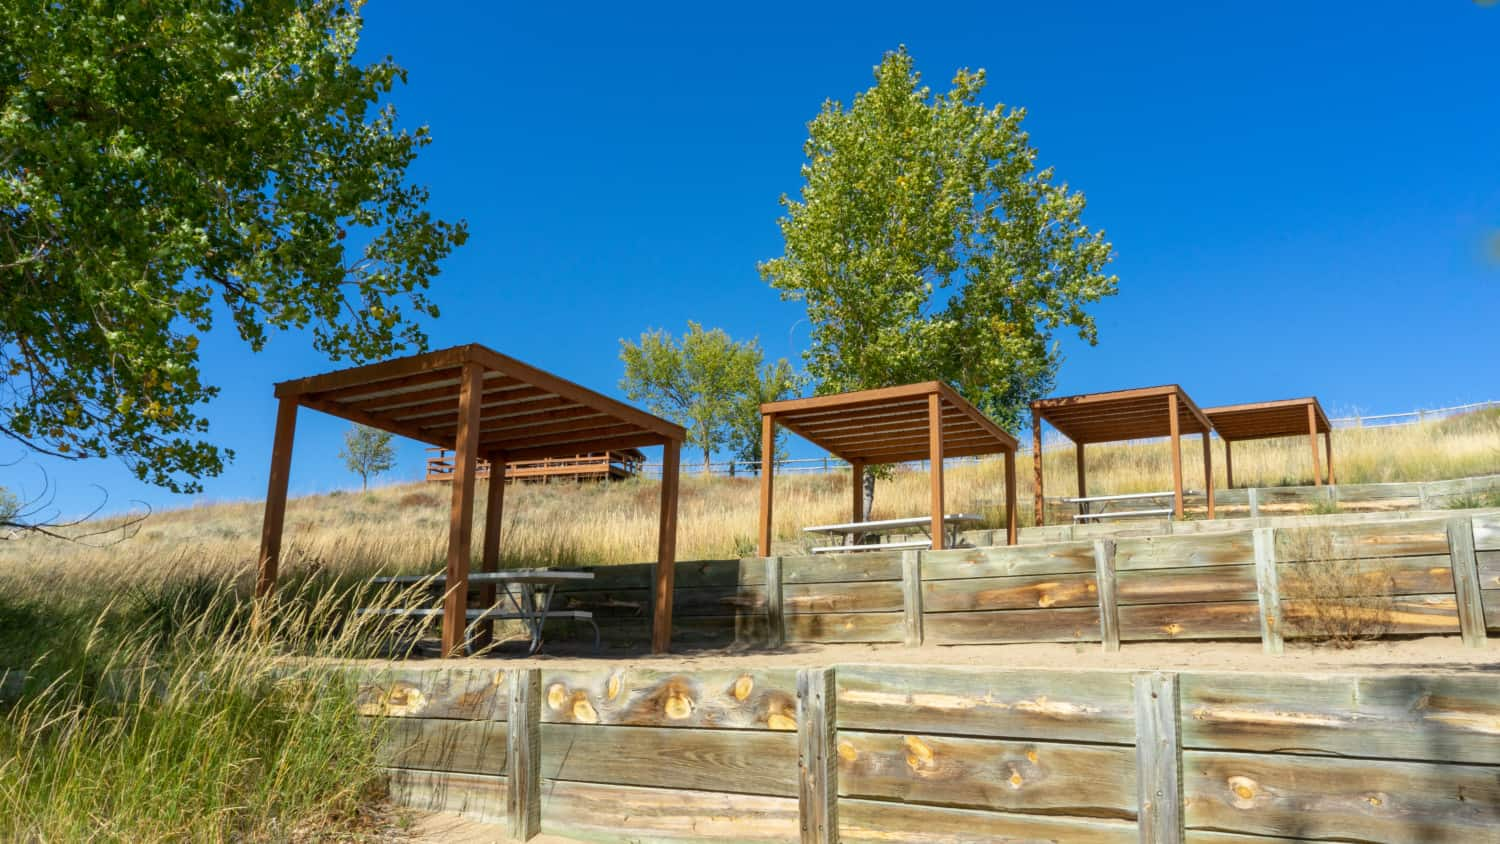 Shade structures on the pet-friendly beach at Angostura Recreation Area, SD